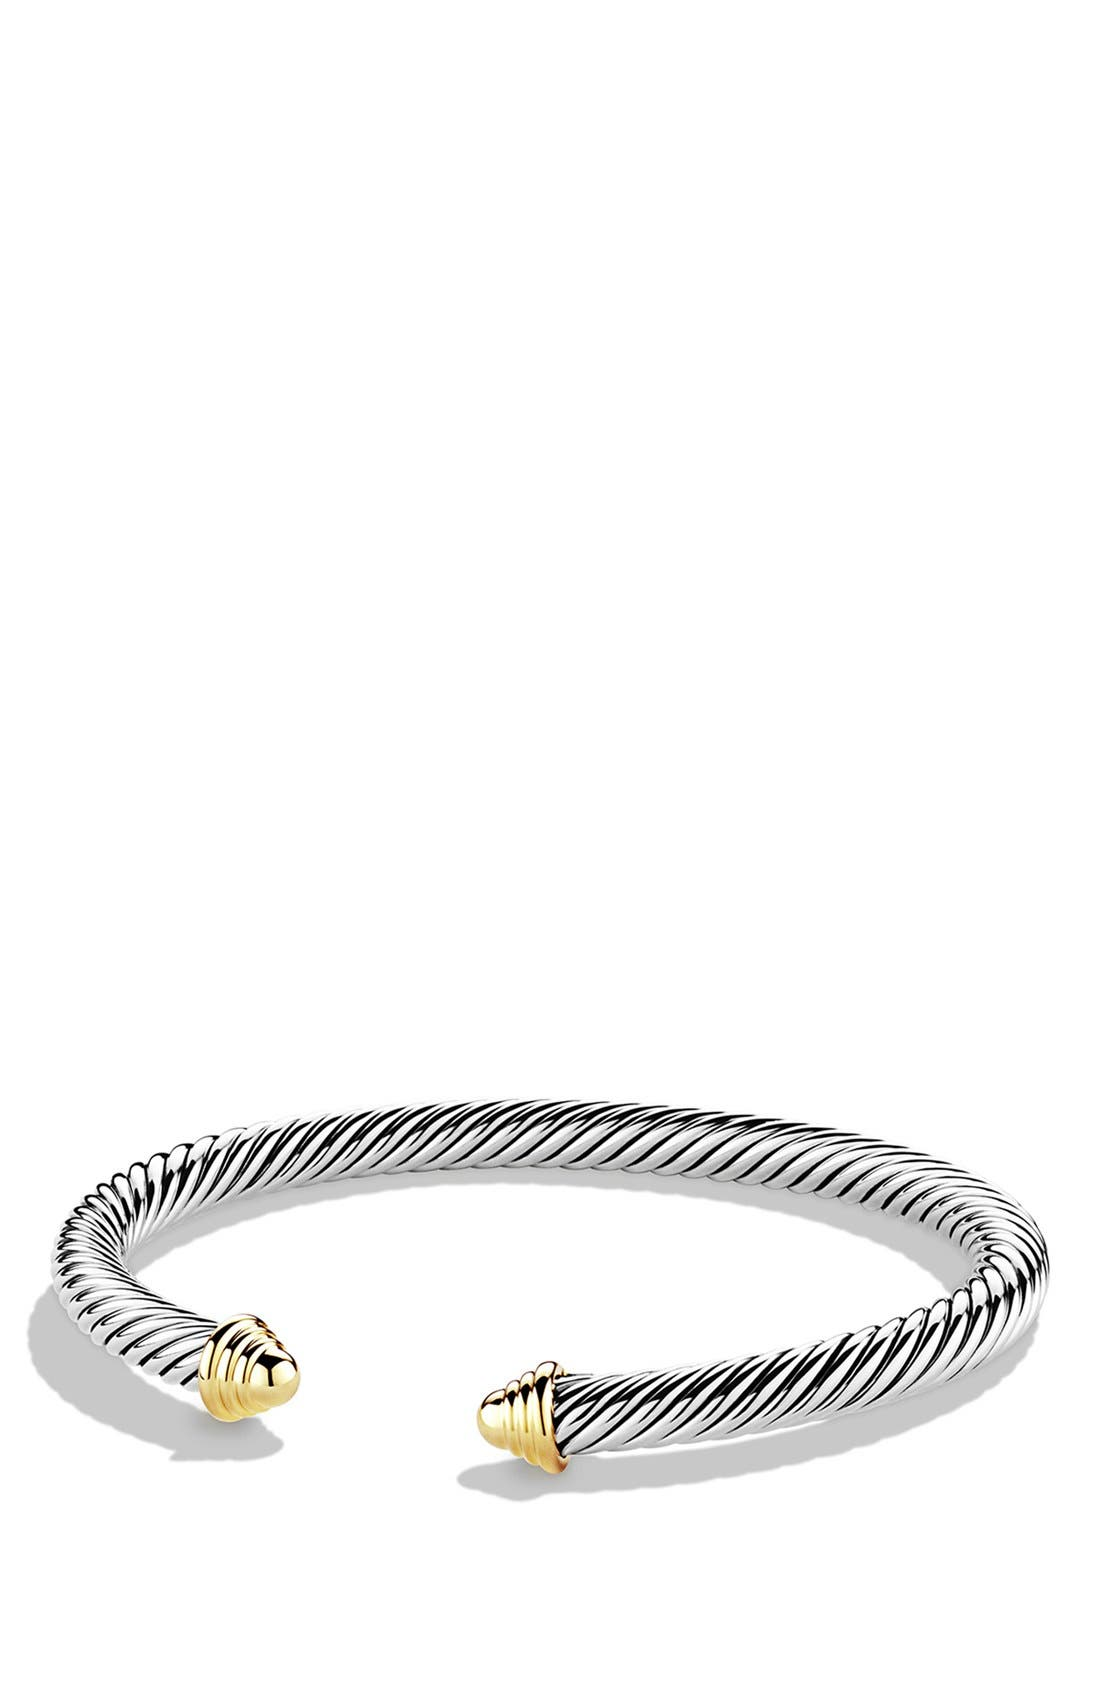 DAVID YURMAN, Cable Classics Bracelet with 14K Gold, 5mm, Main thumbnail 1, color, TWO TONE